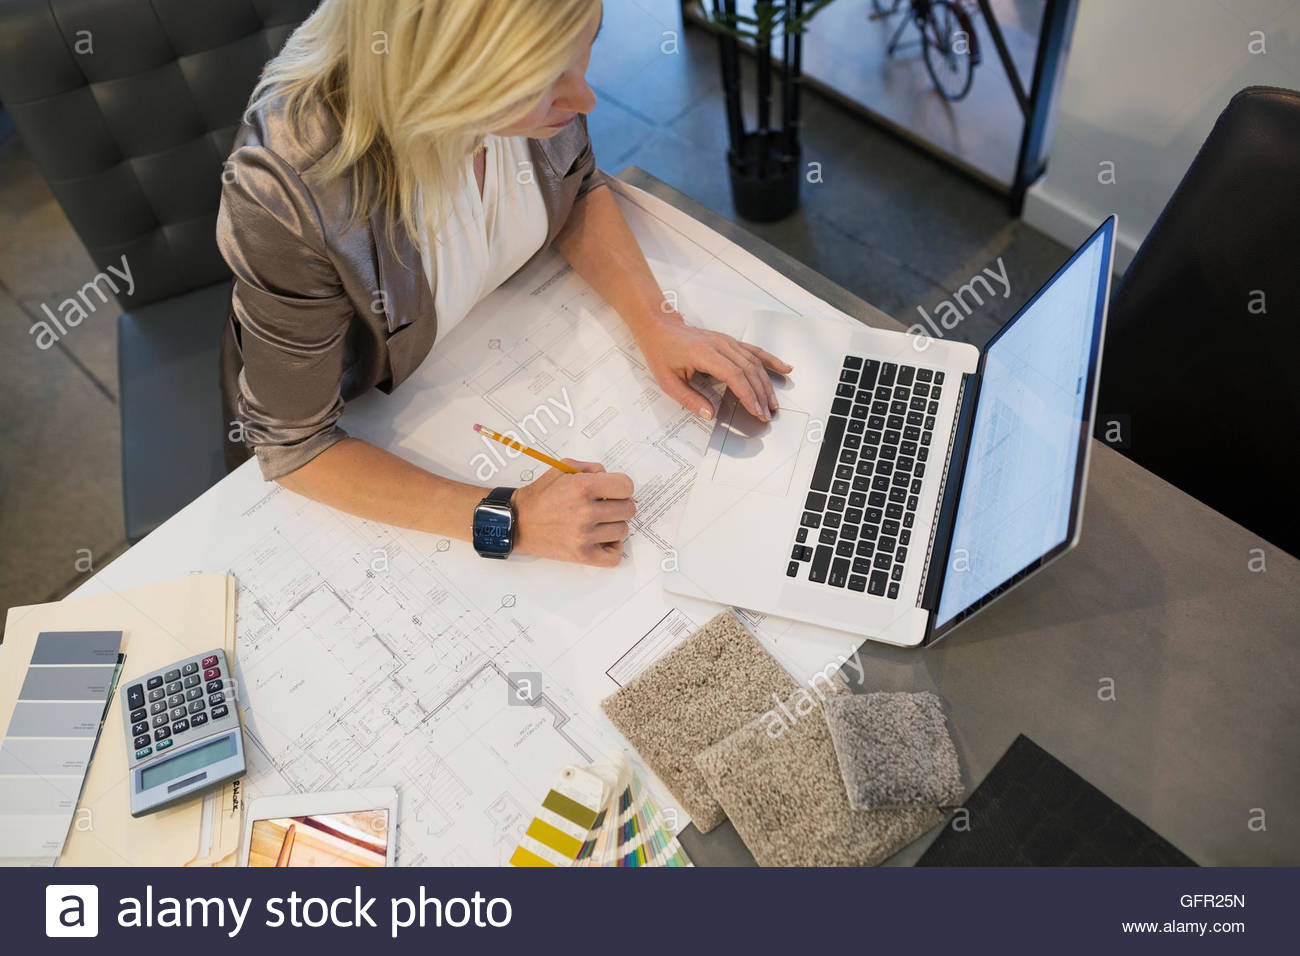 Interior designer with blueprints and swatches working at laptop - Stock Image